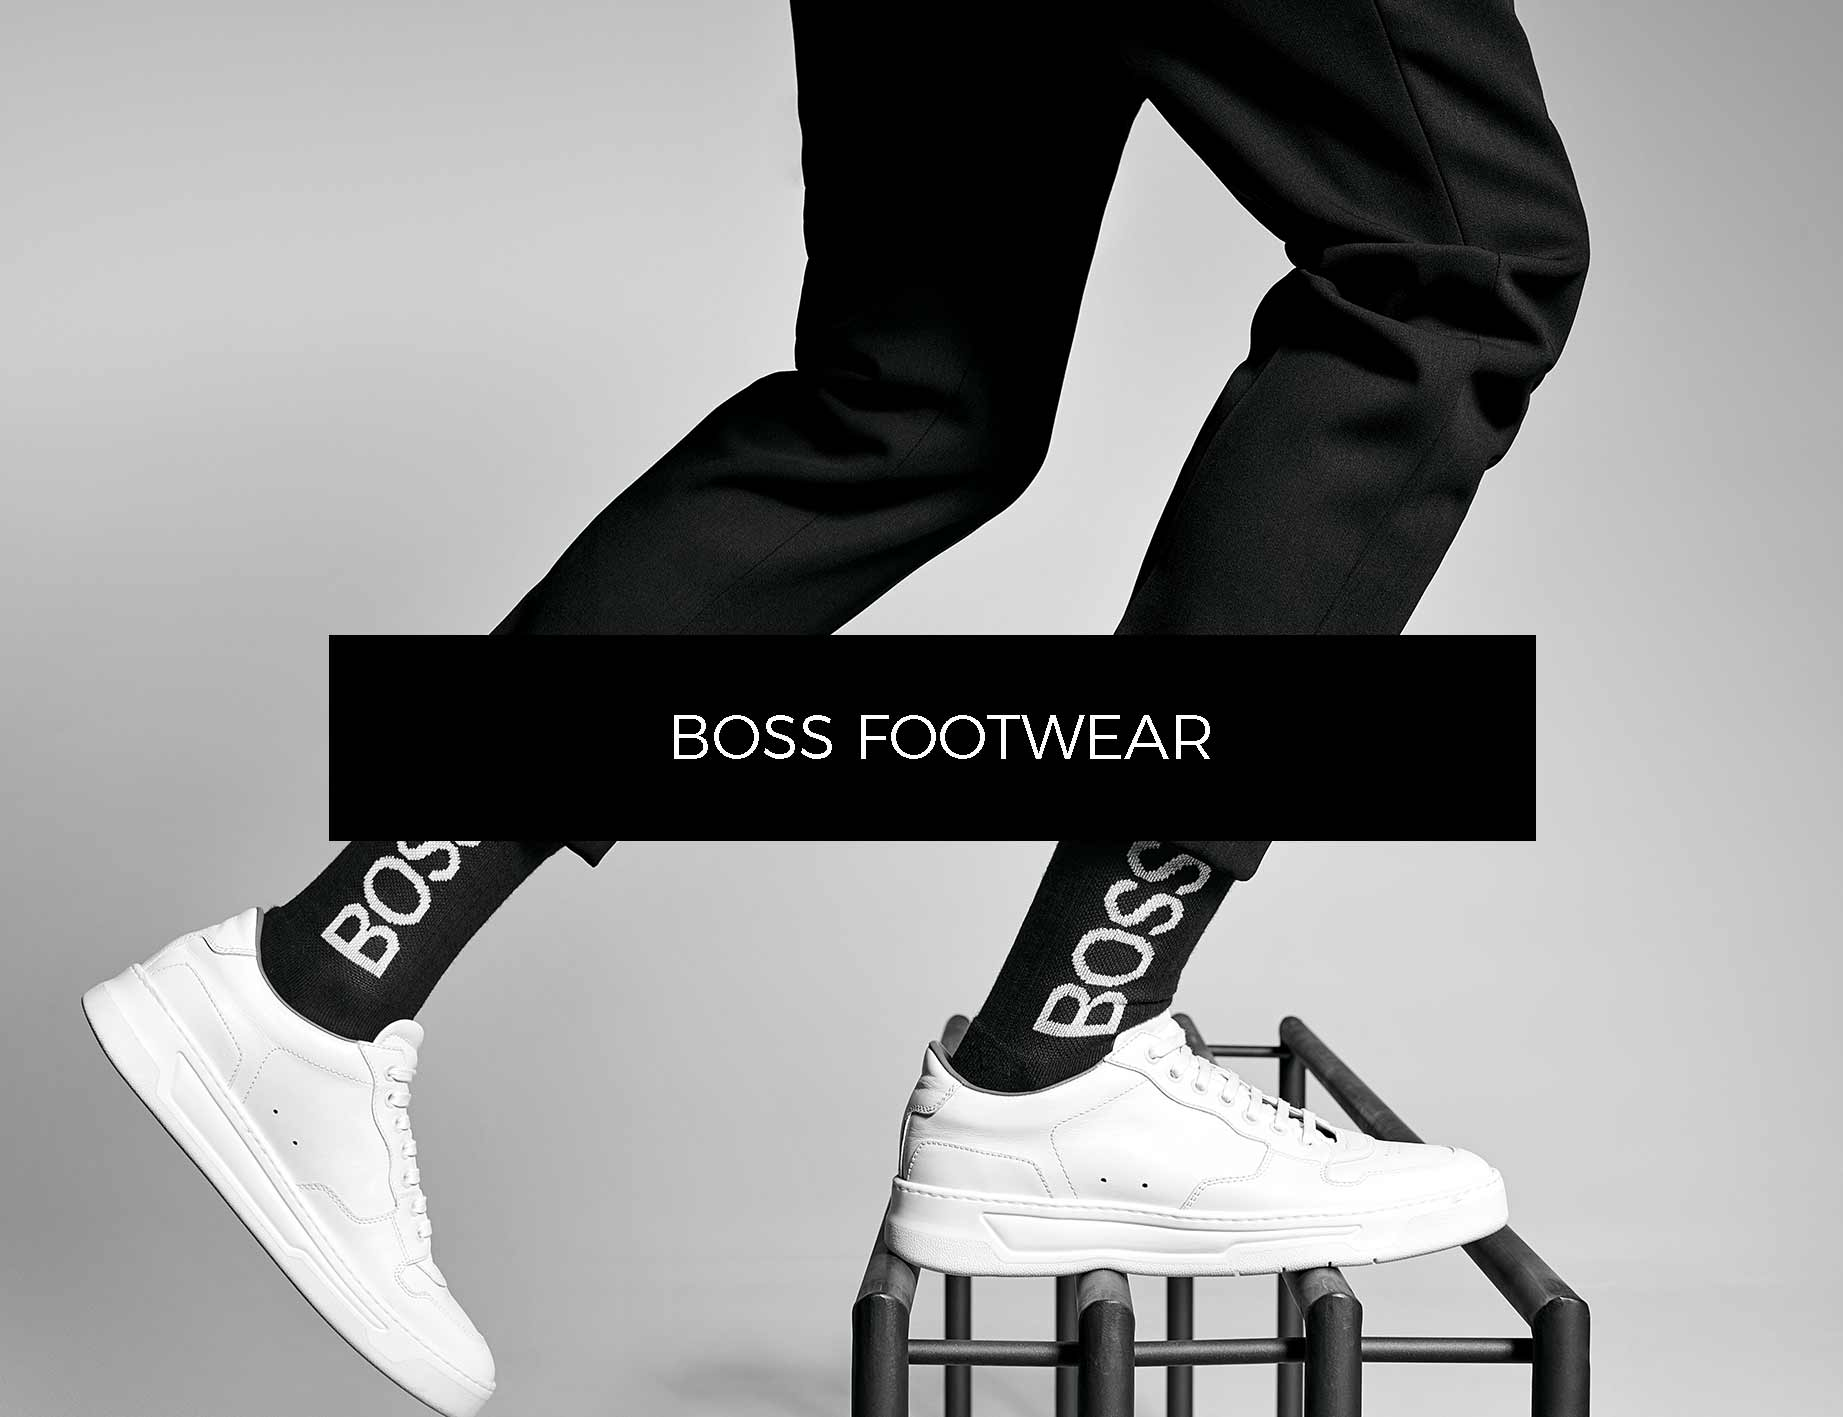 Hugo Boss Footwear